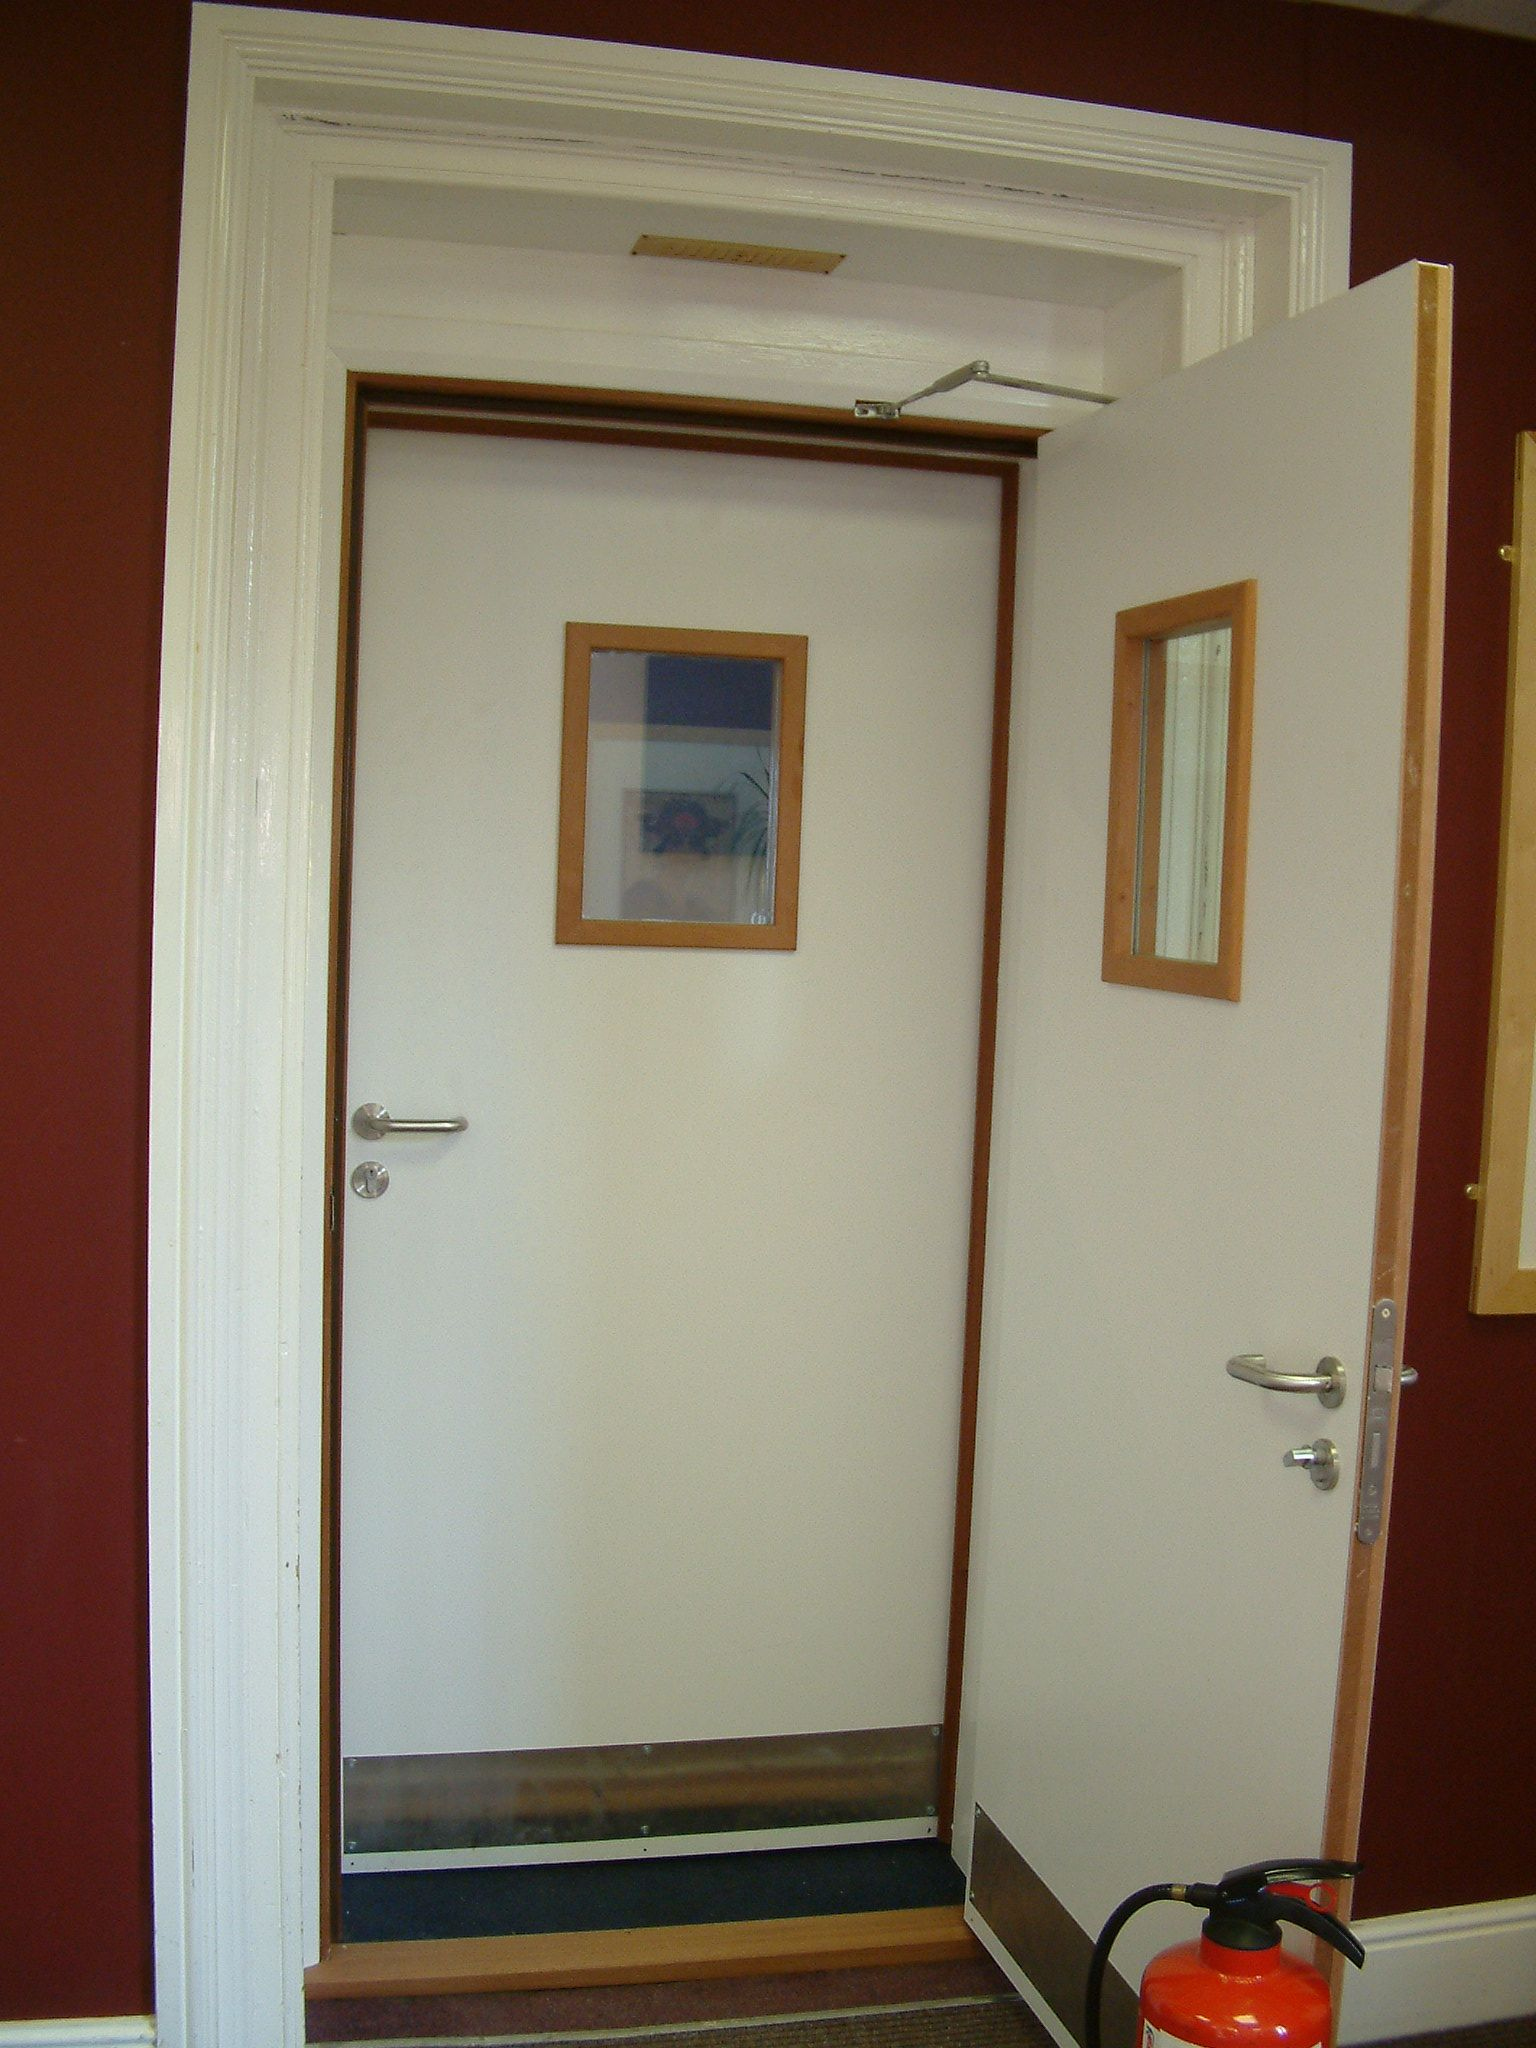 Soundproof door construction - Find This Pin And More On Soundproof Doors